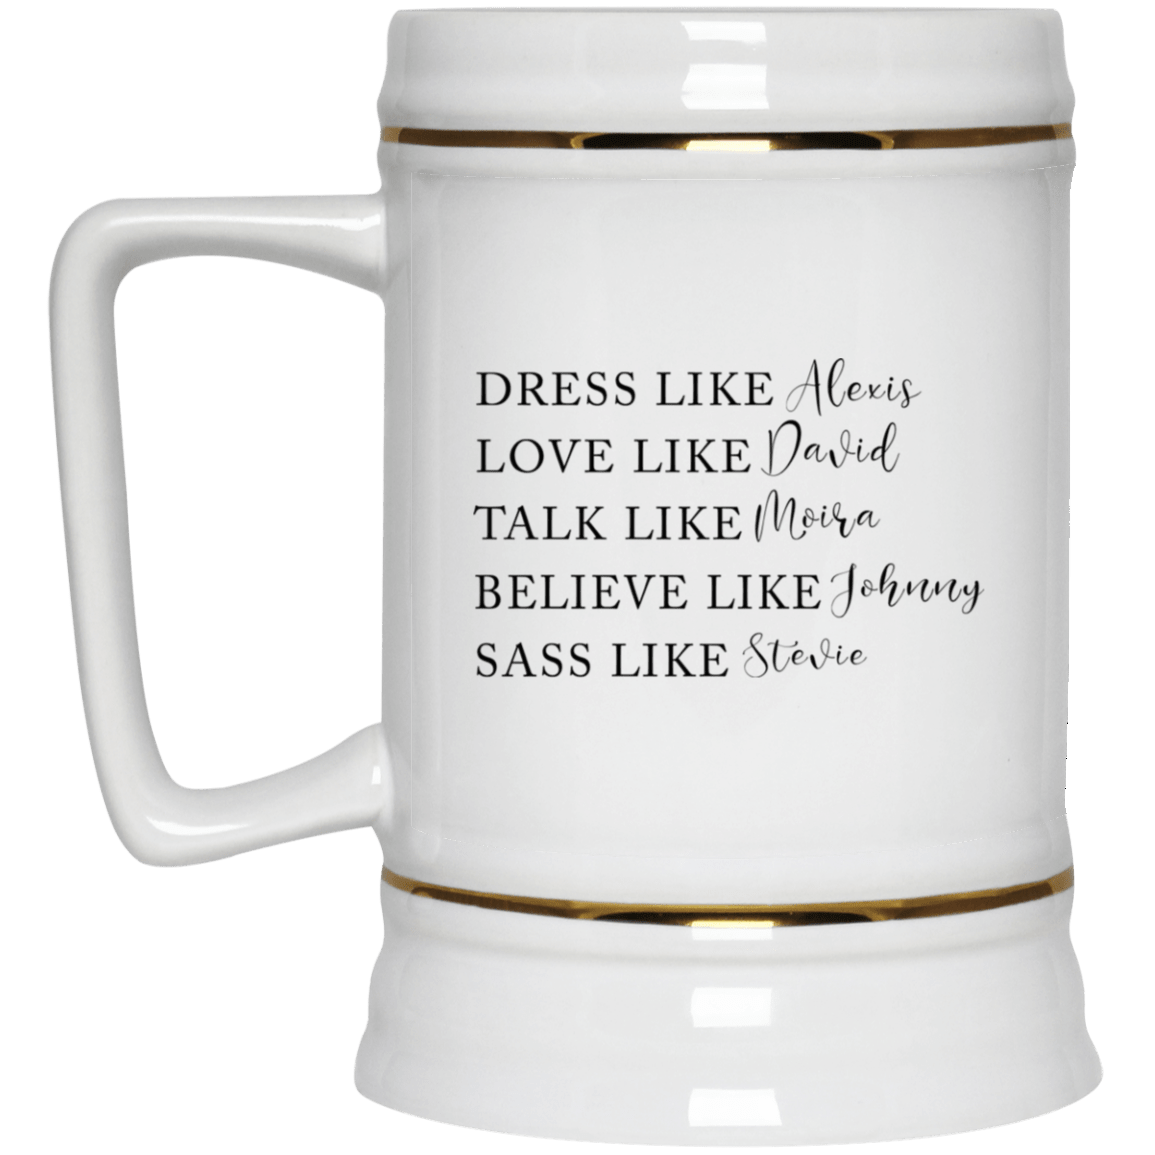 Dress Like Alexis Love Like David Talk Like Moira Believe Like Johnny Sass Like Stevie Mug 1035-9819-88282885-47459 - Tee Ript